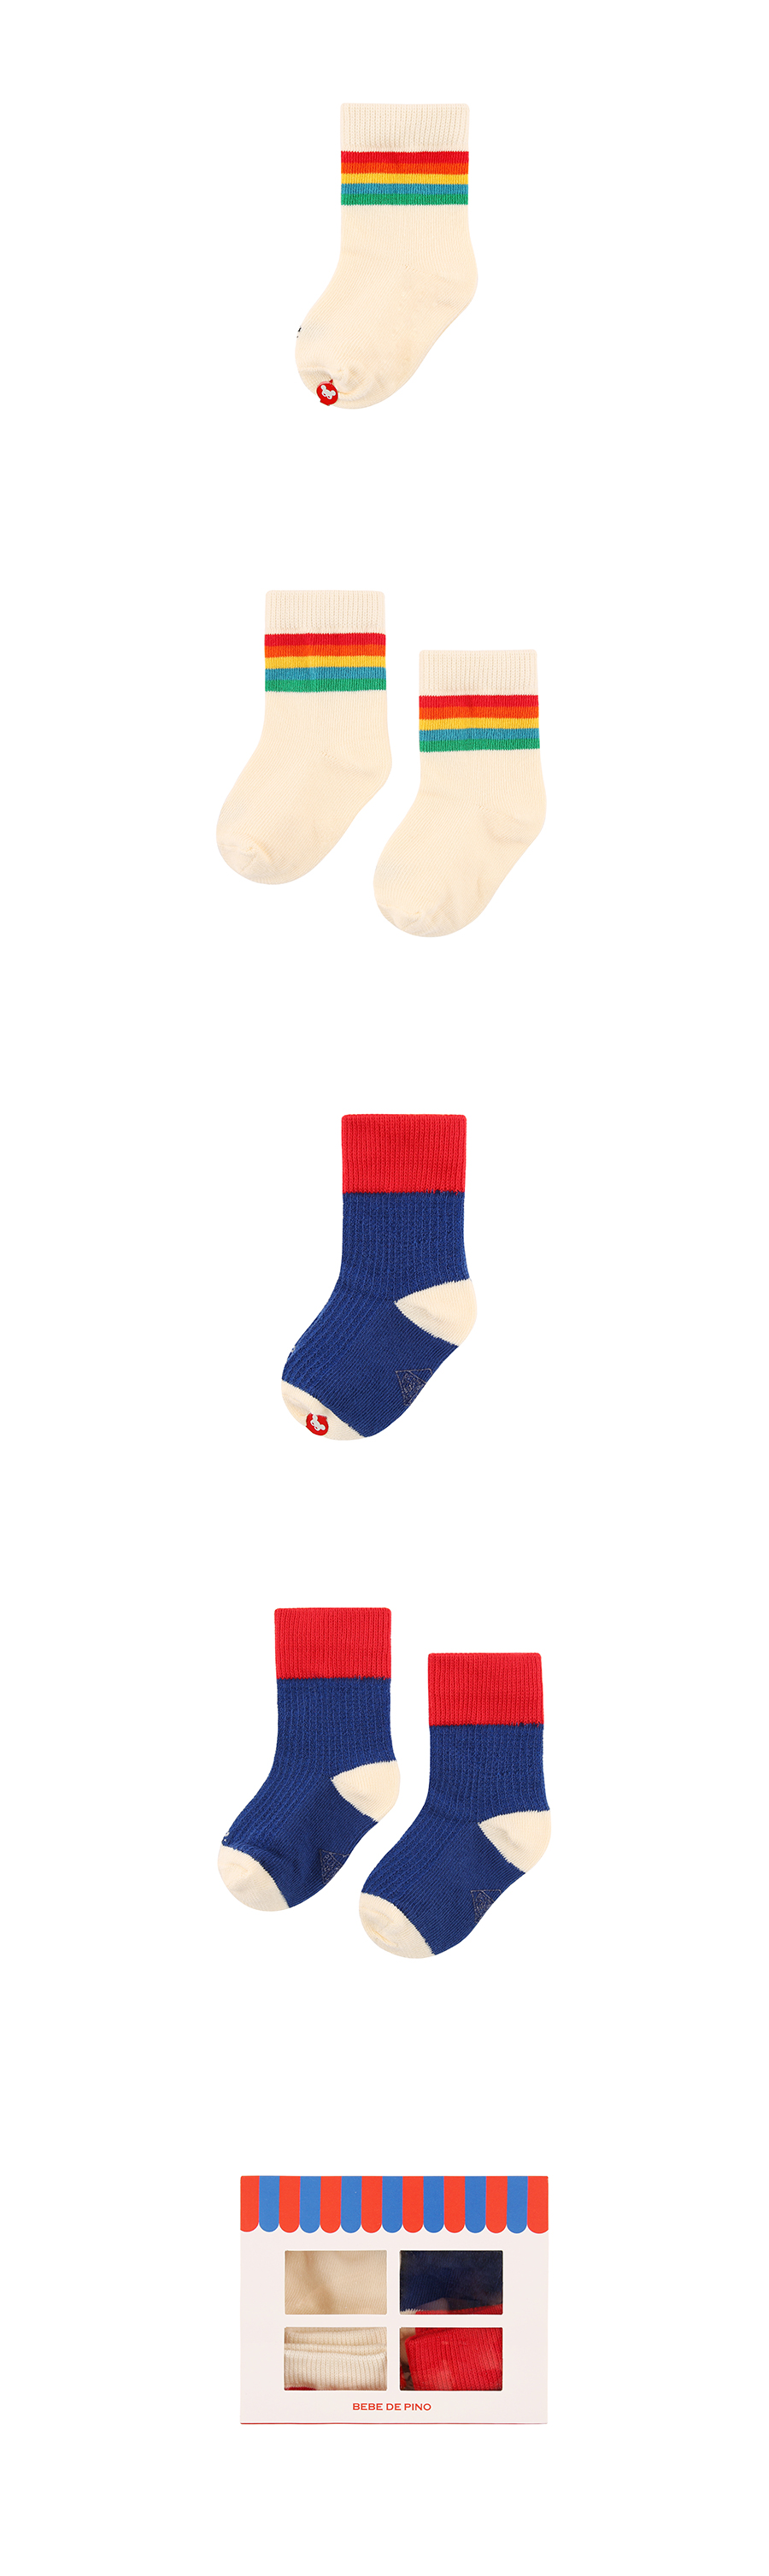 Rainbow color block socks 2 piece set 상세 이미지